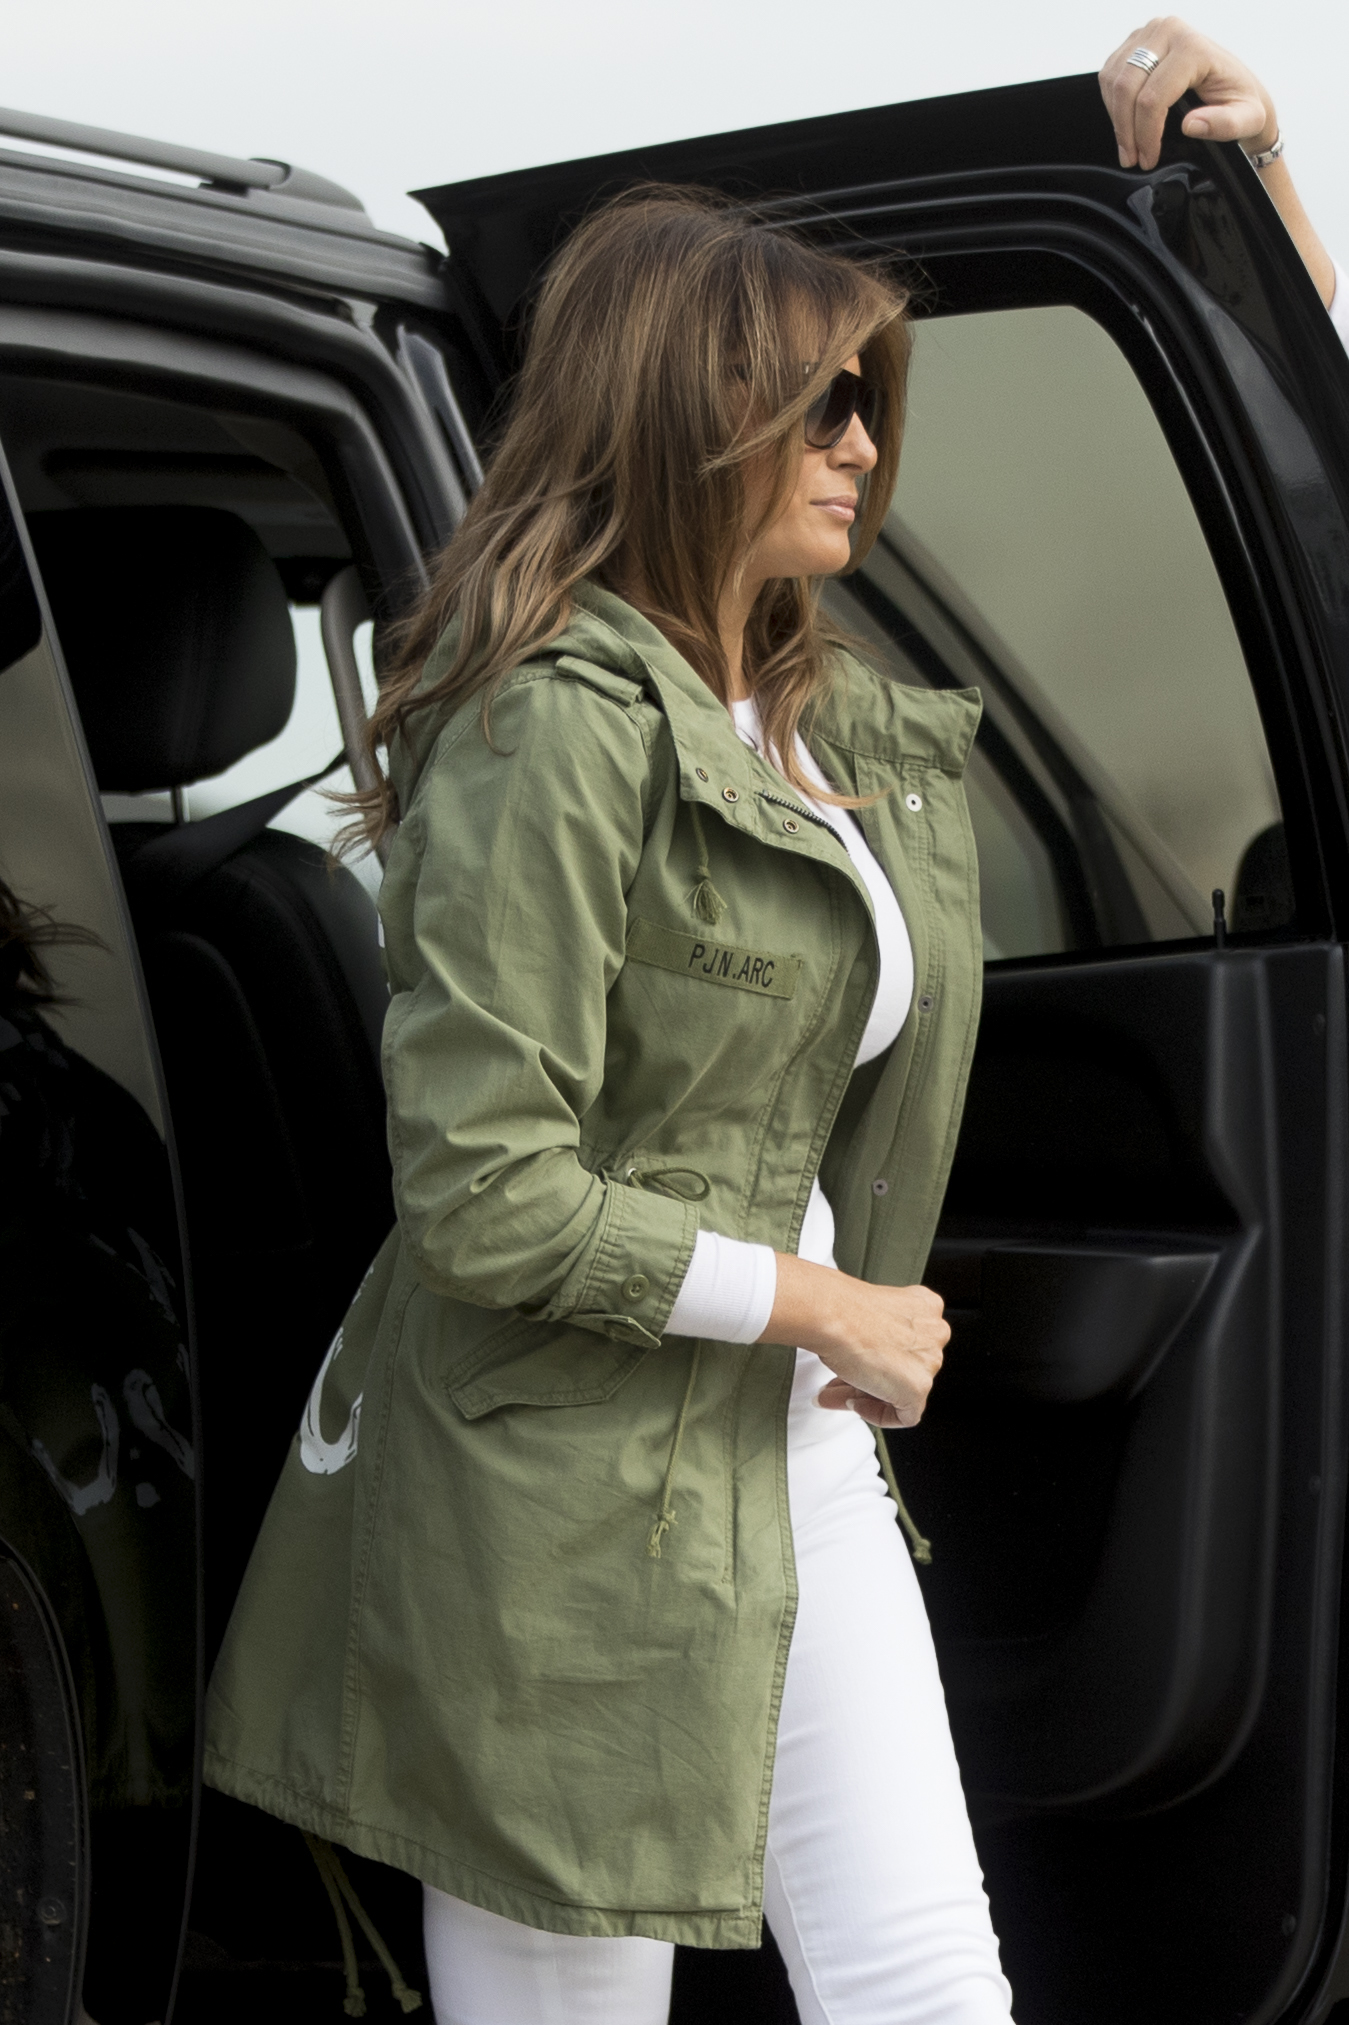 <div class='meta'><div class='origin-logo' data-origin='AP'></div><span class='caption-text' data-credit='AP'>First lady Melania Trump boards a plane at Andrews Air Force Base, Md., Thursday, June 21, 2018, to travel to Texas. (AP Photo/Andrew Harnik)</span></div>